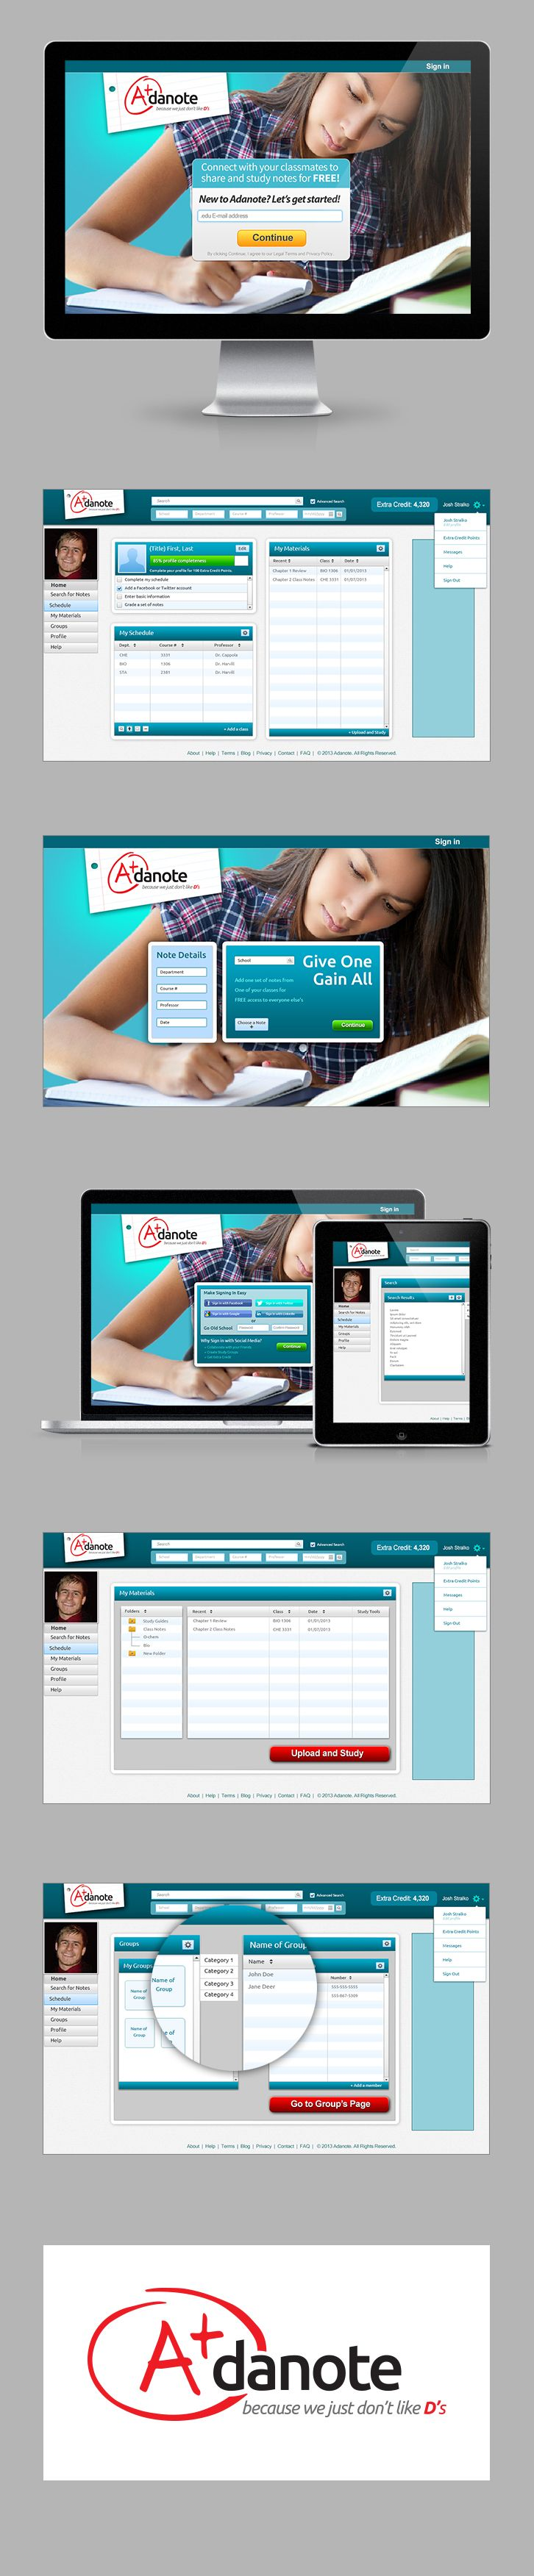 Adanote is an online collaborative platform for college students to upload, share, and study their notes effectively. Adanote was started by college students and is intended to be used by college students. Their mission is to  provide an innovative collaborative learning platform for students to share notes, study guides, and other class materials and then use our tools to study those materials.